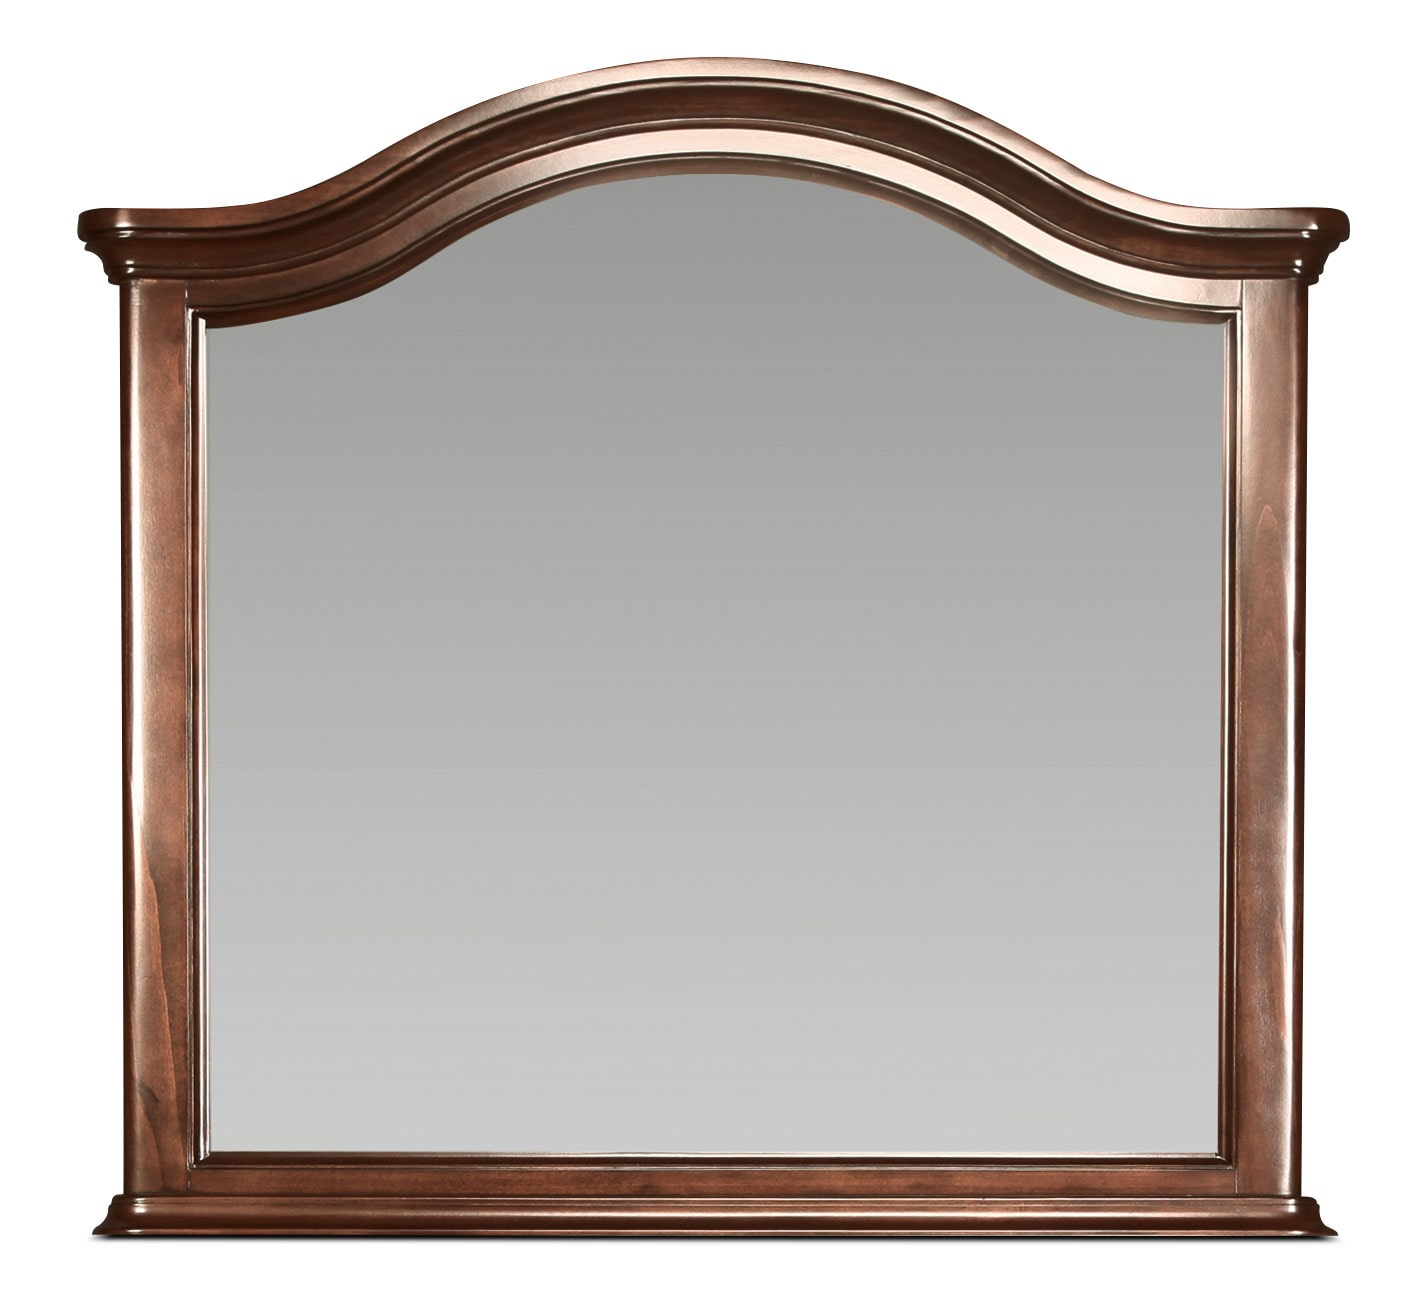 Stratton Mirror - Brown Cherry